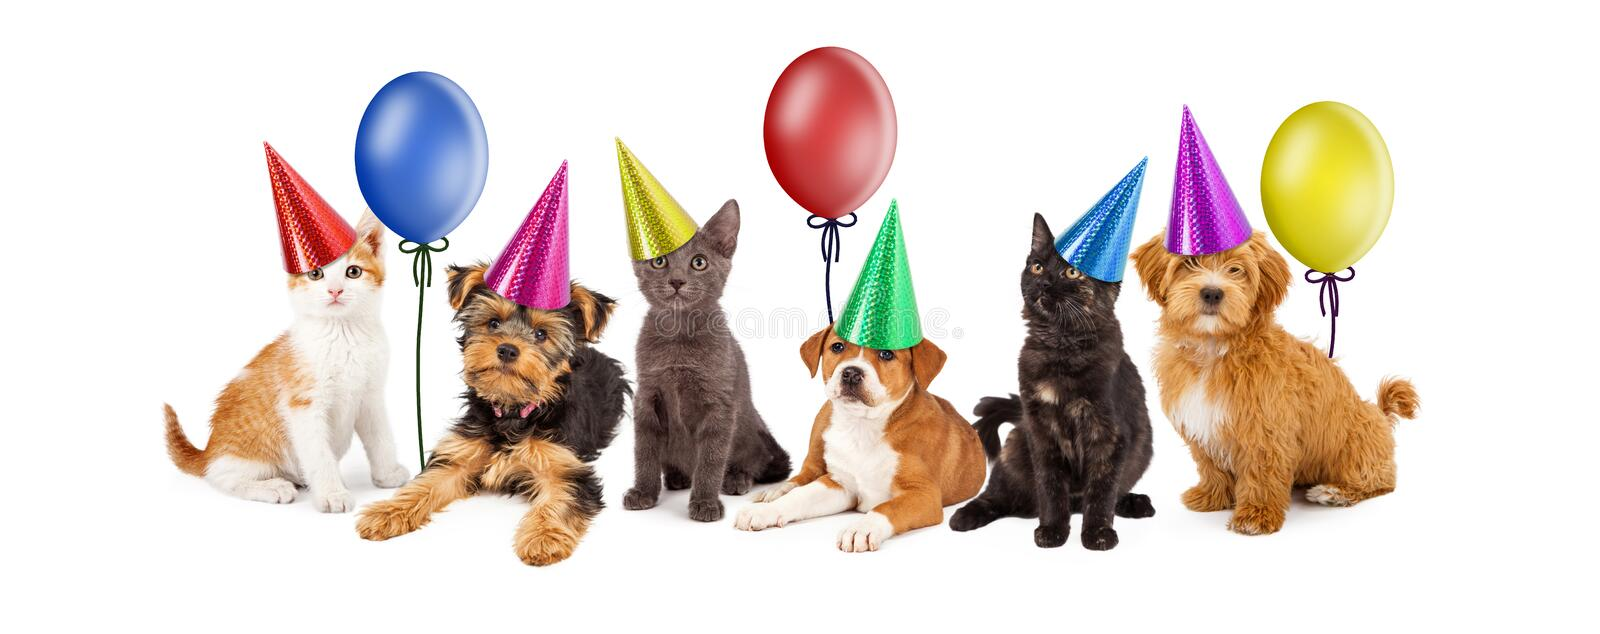 Puppies and Kittens in Party Hats With Balloons royalty free stock photography